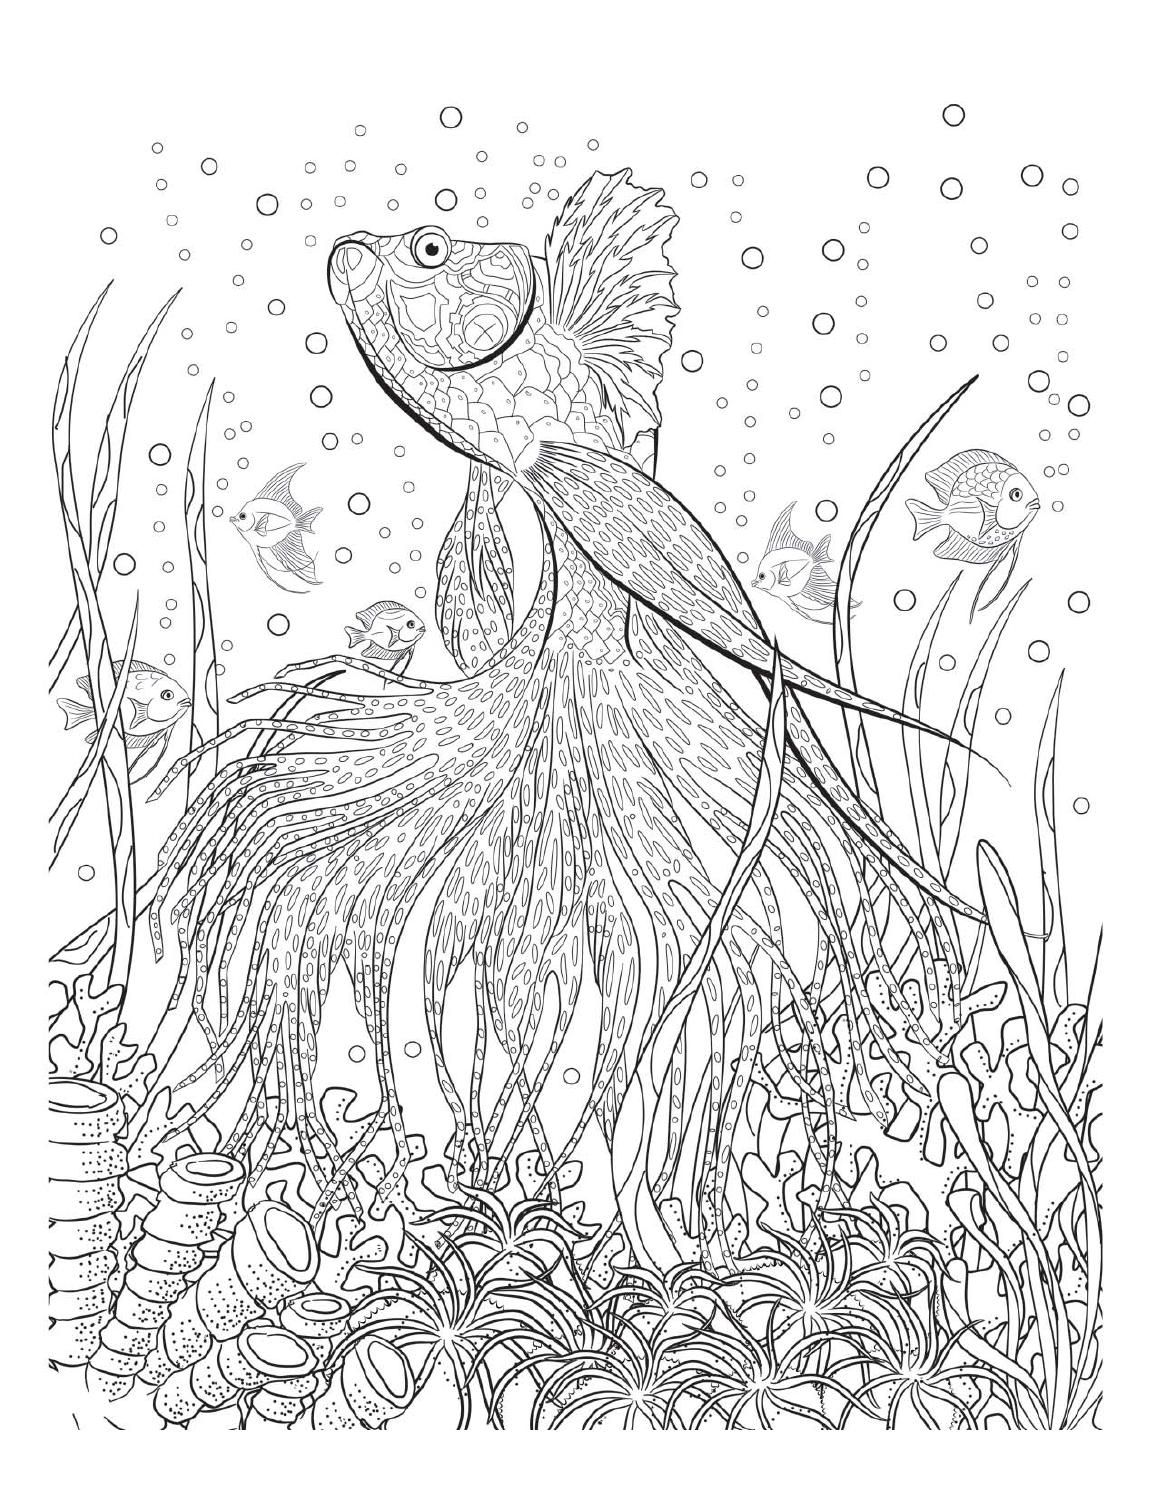 Underwater Coloring Pages For Adults.